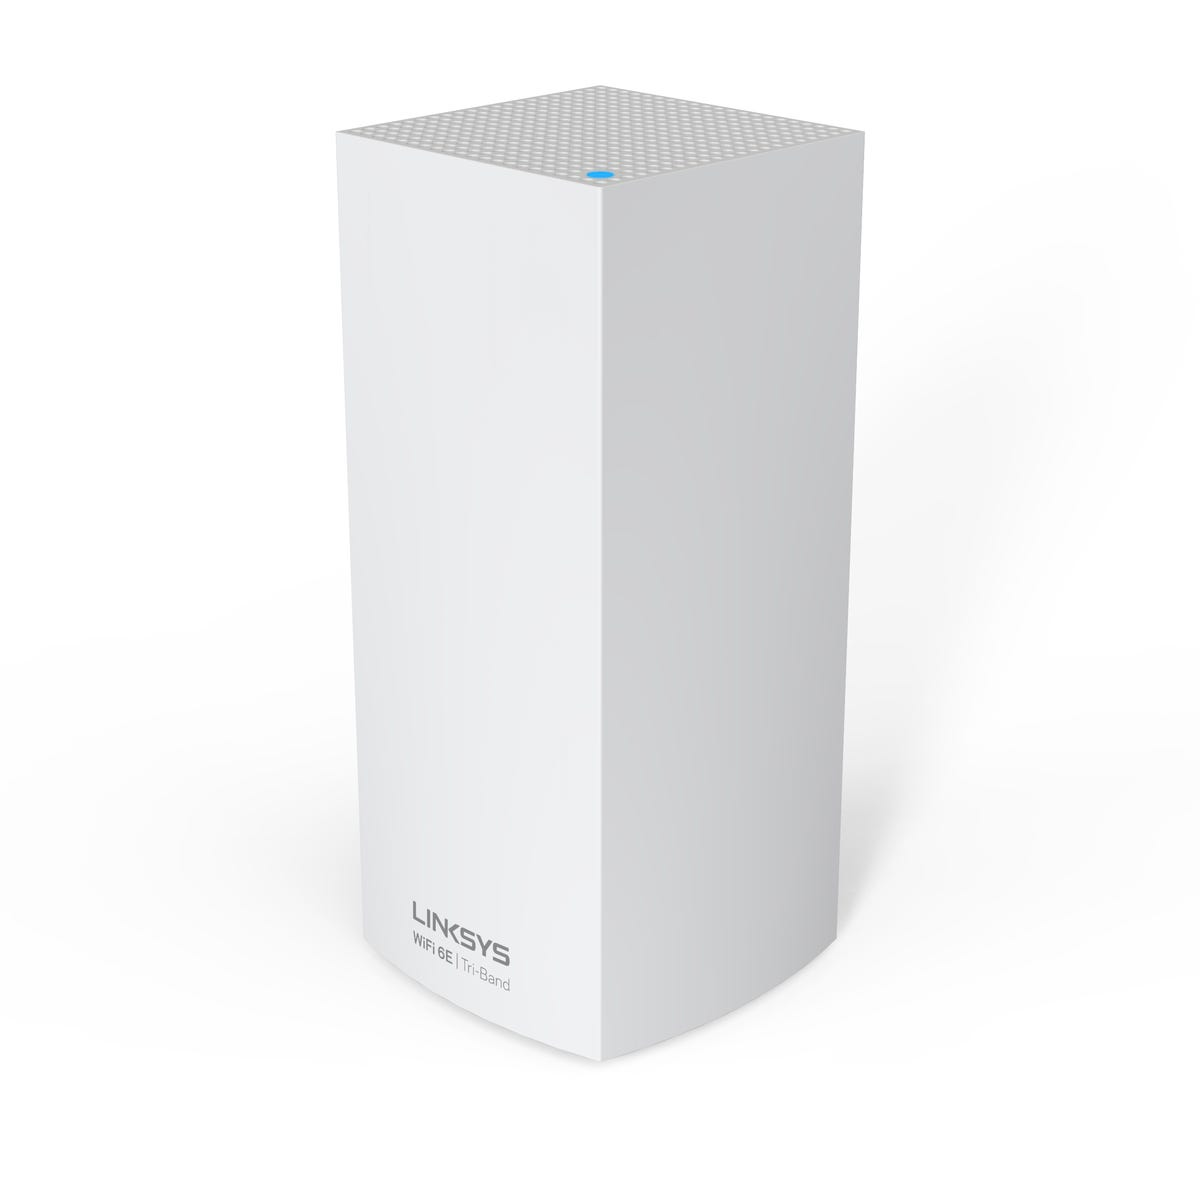 linksys-axe8400-front01.png